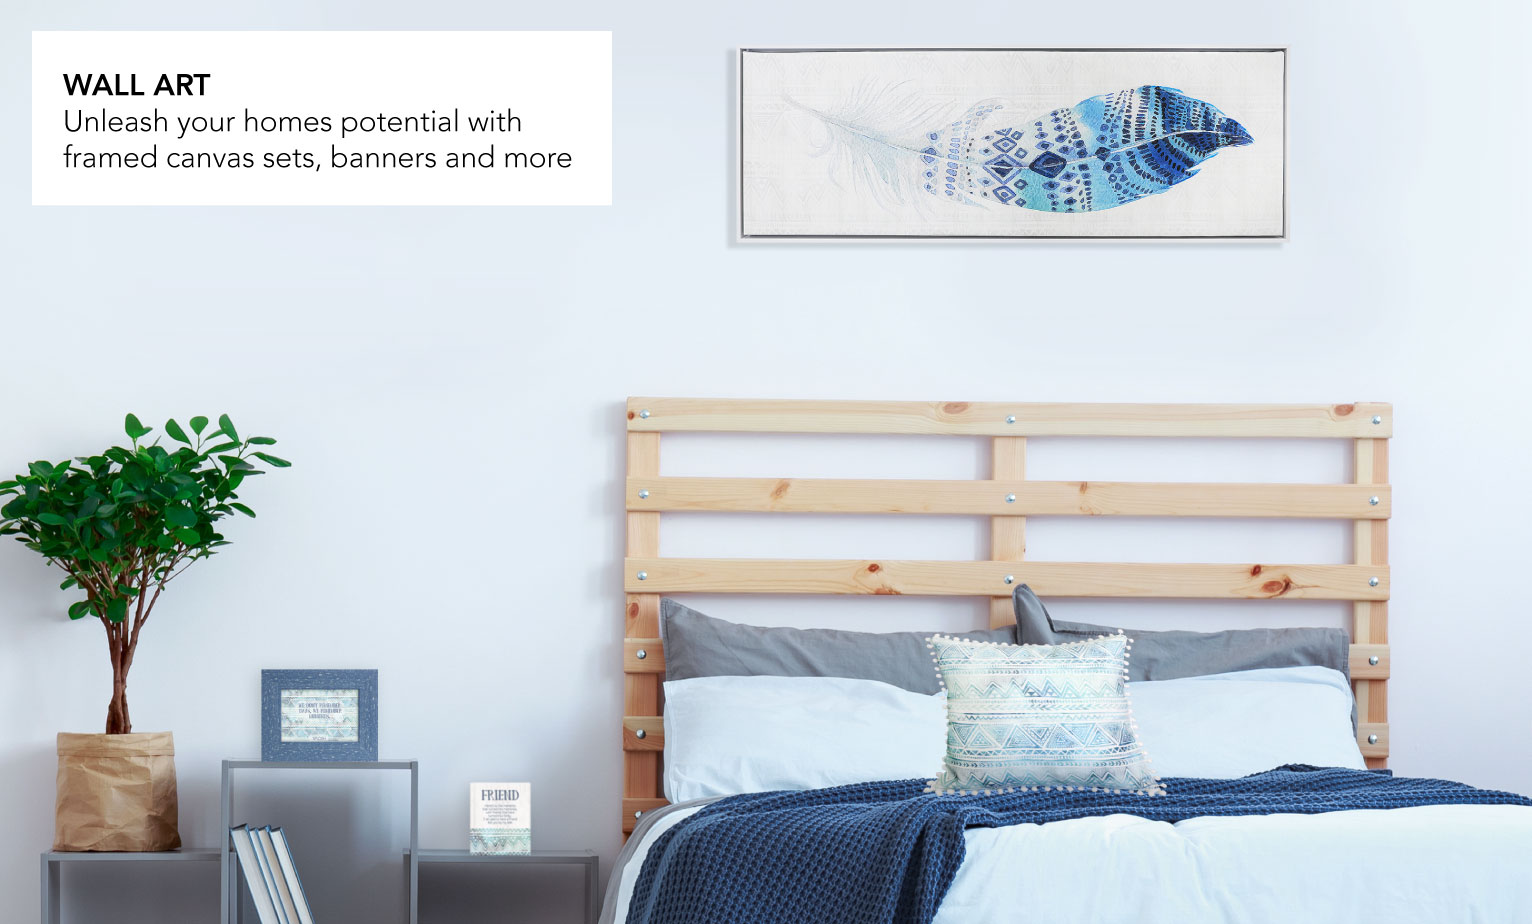 Unleash your homes potential with framed canvas sets, banners and more